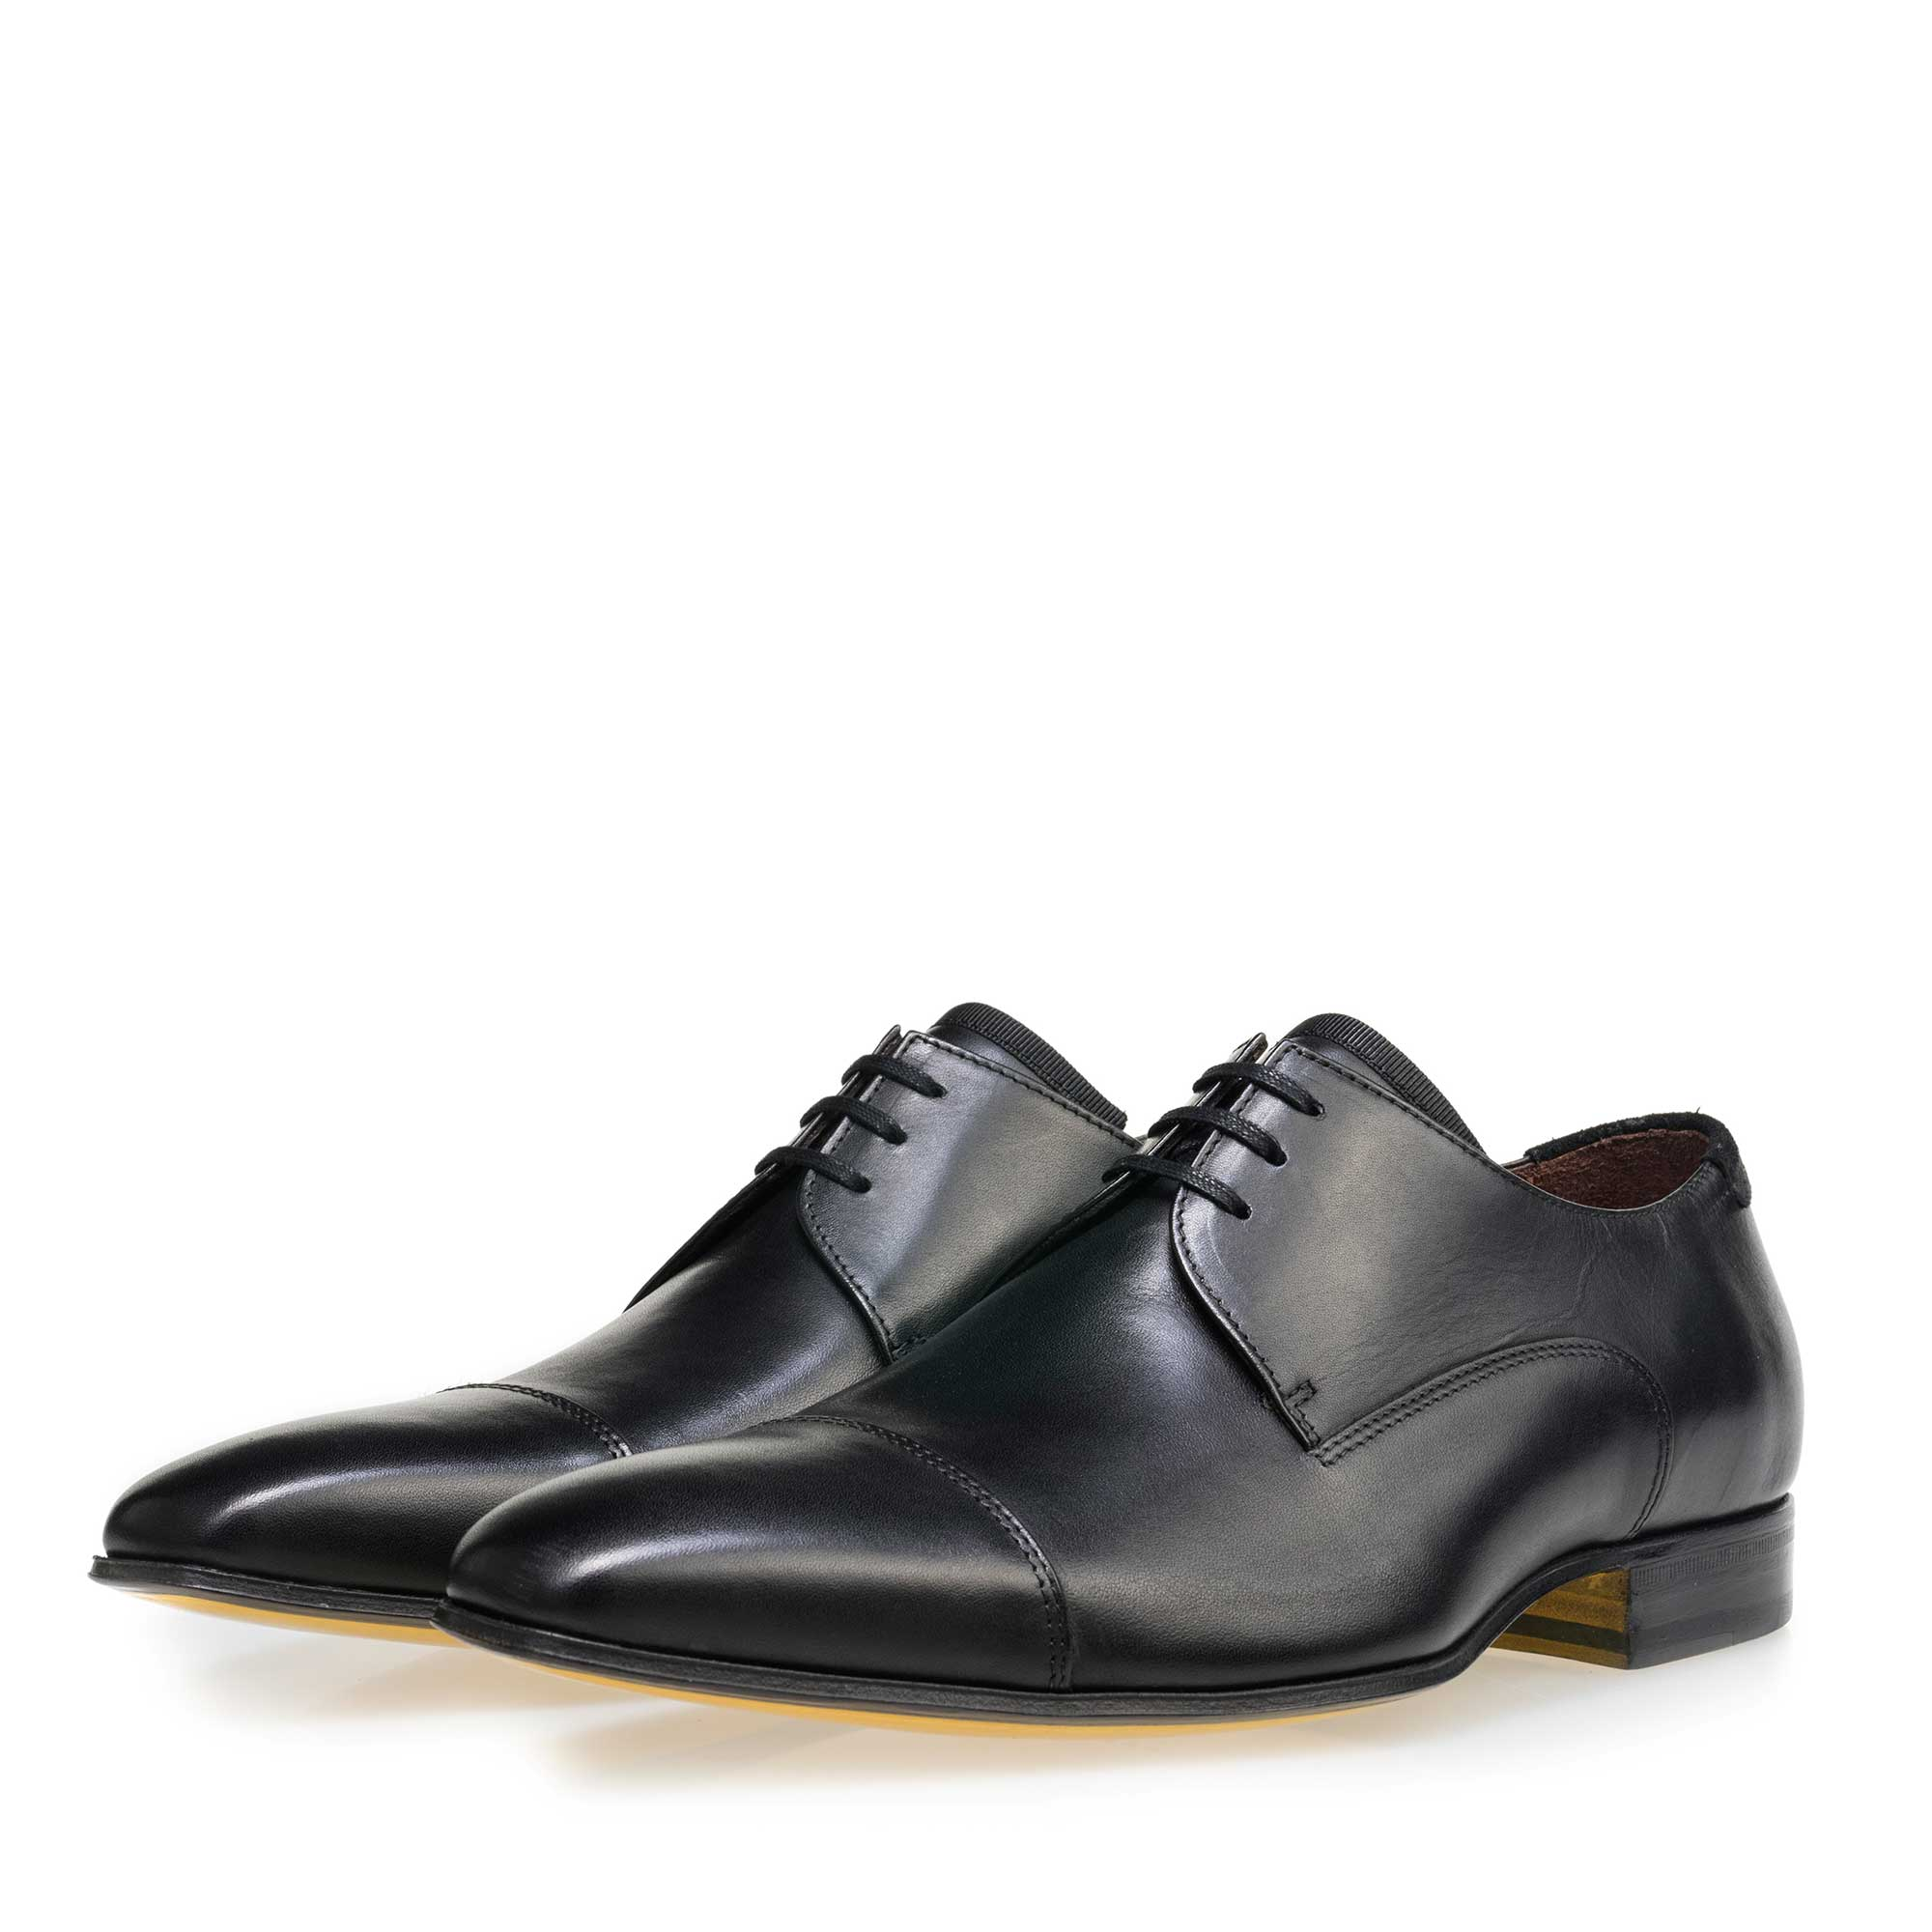 14192/03 - Floris van Bommel black leather men's lace-up shoe